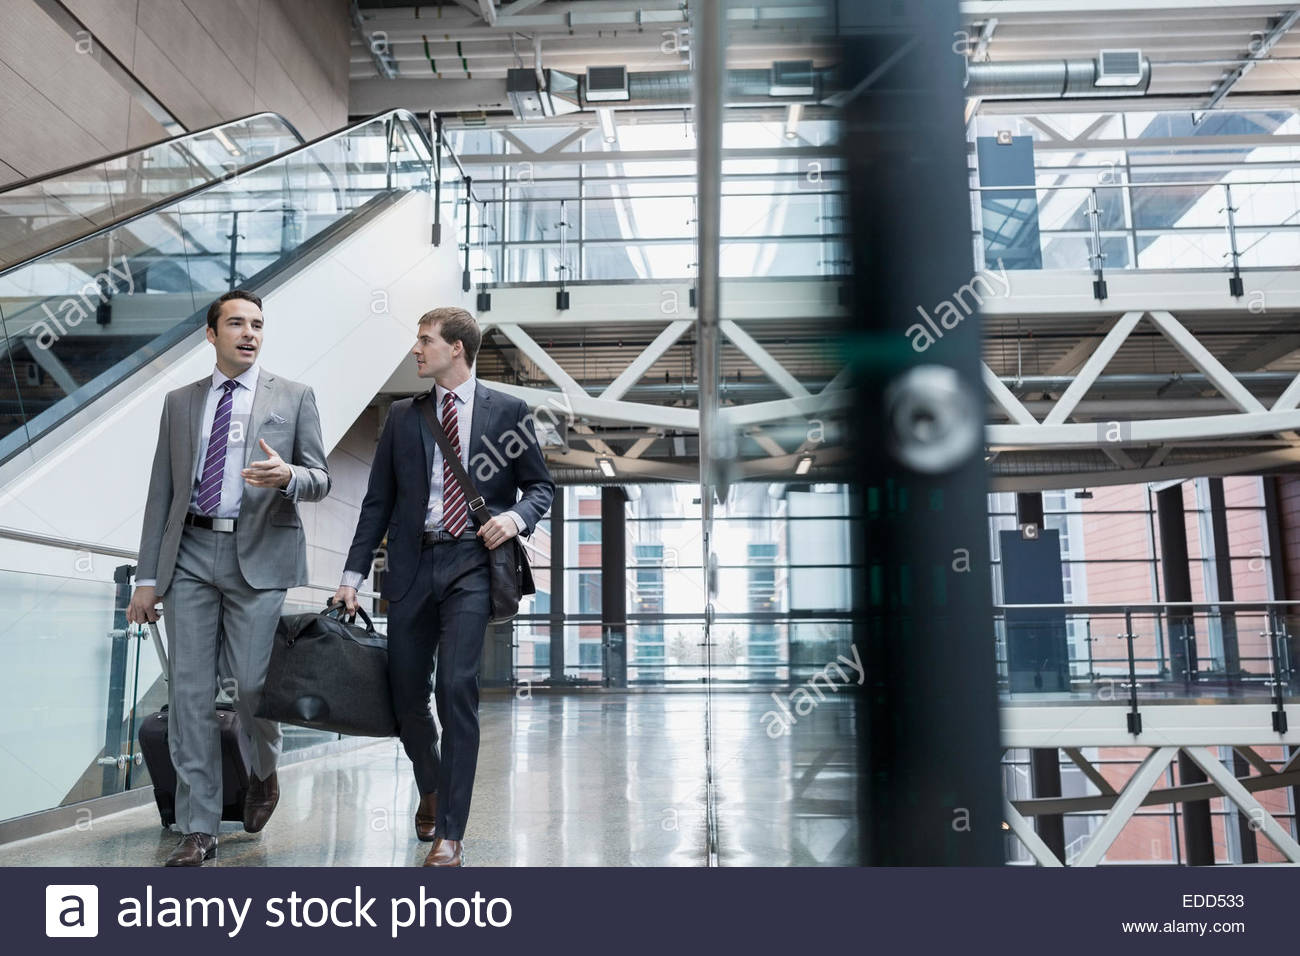 Businessmen talking and walking with luggage in airport - Stock Image